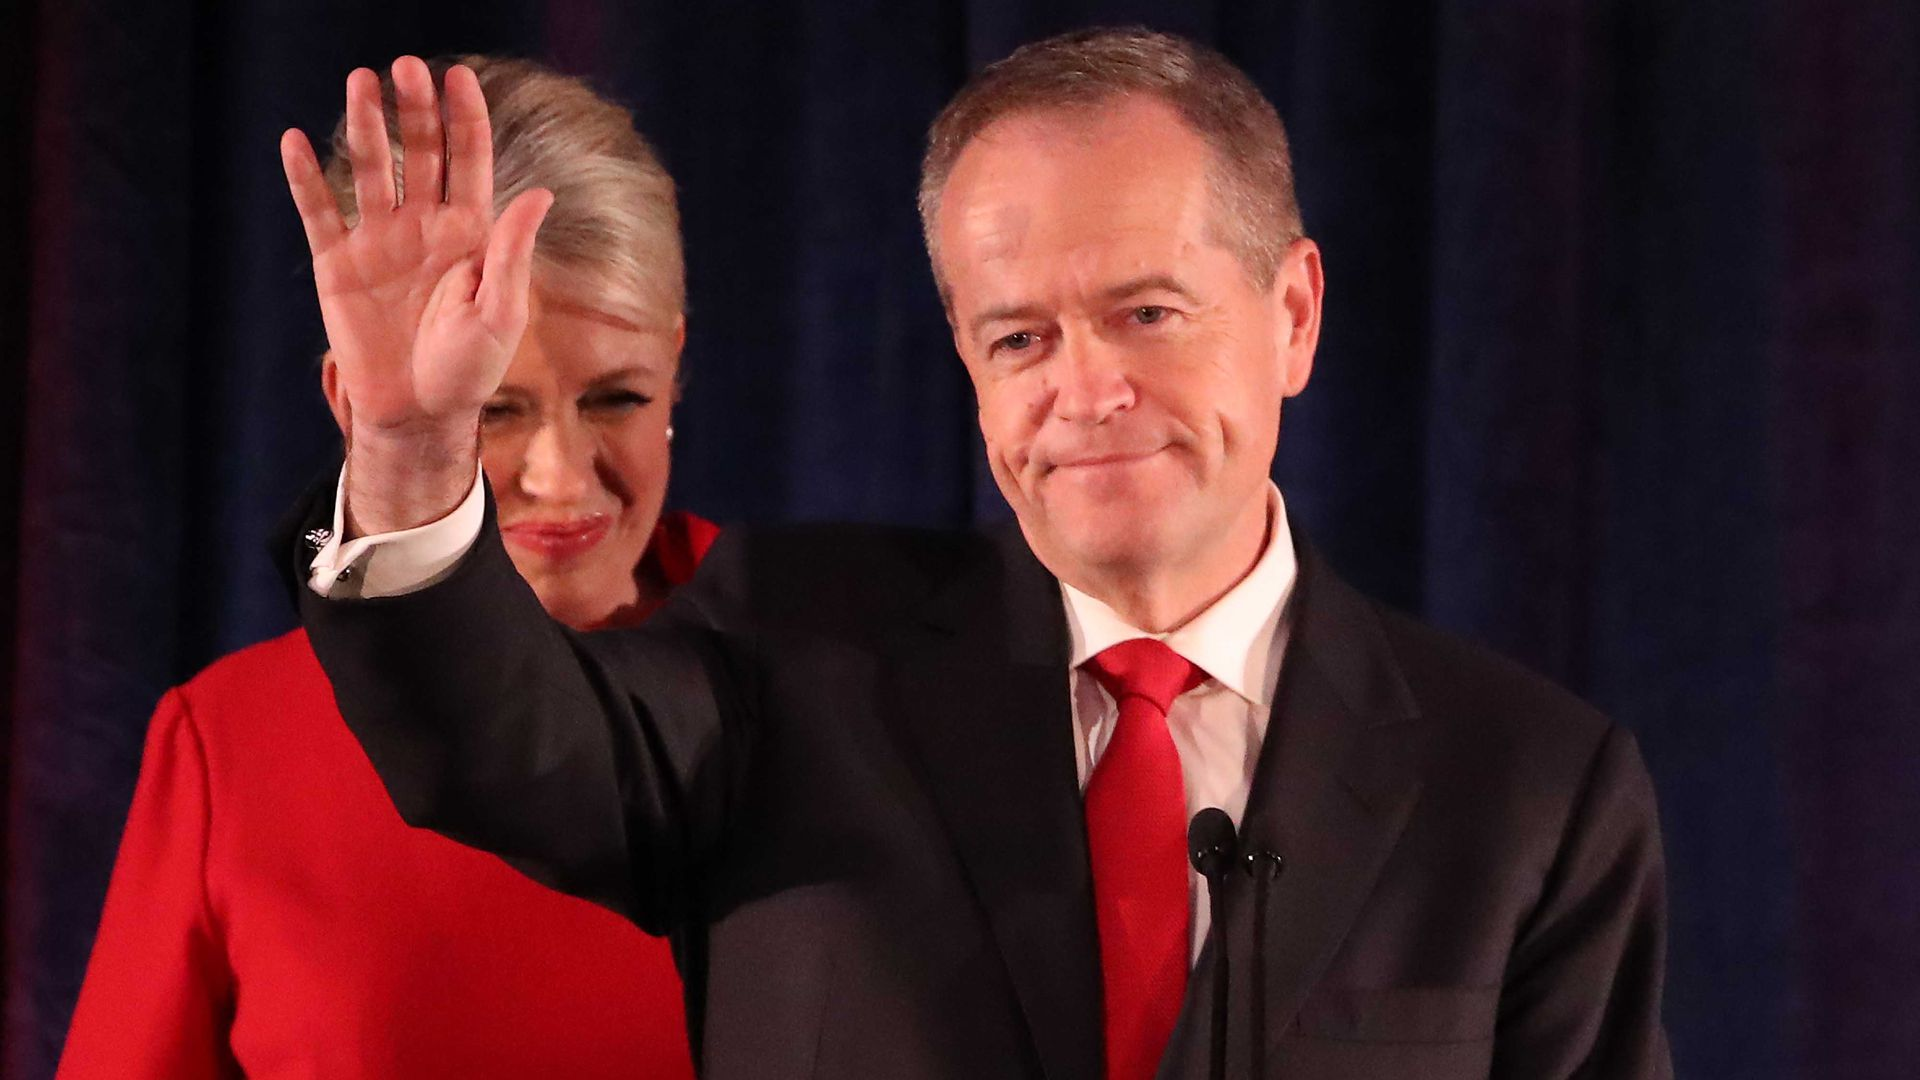 Leader of the Opposition and Leader of the Labor Party Bill Shorten